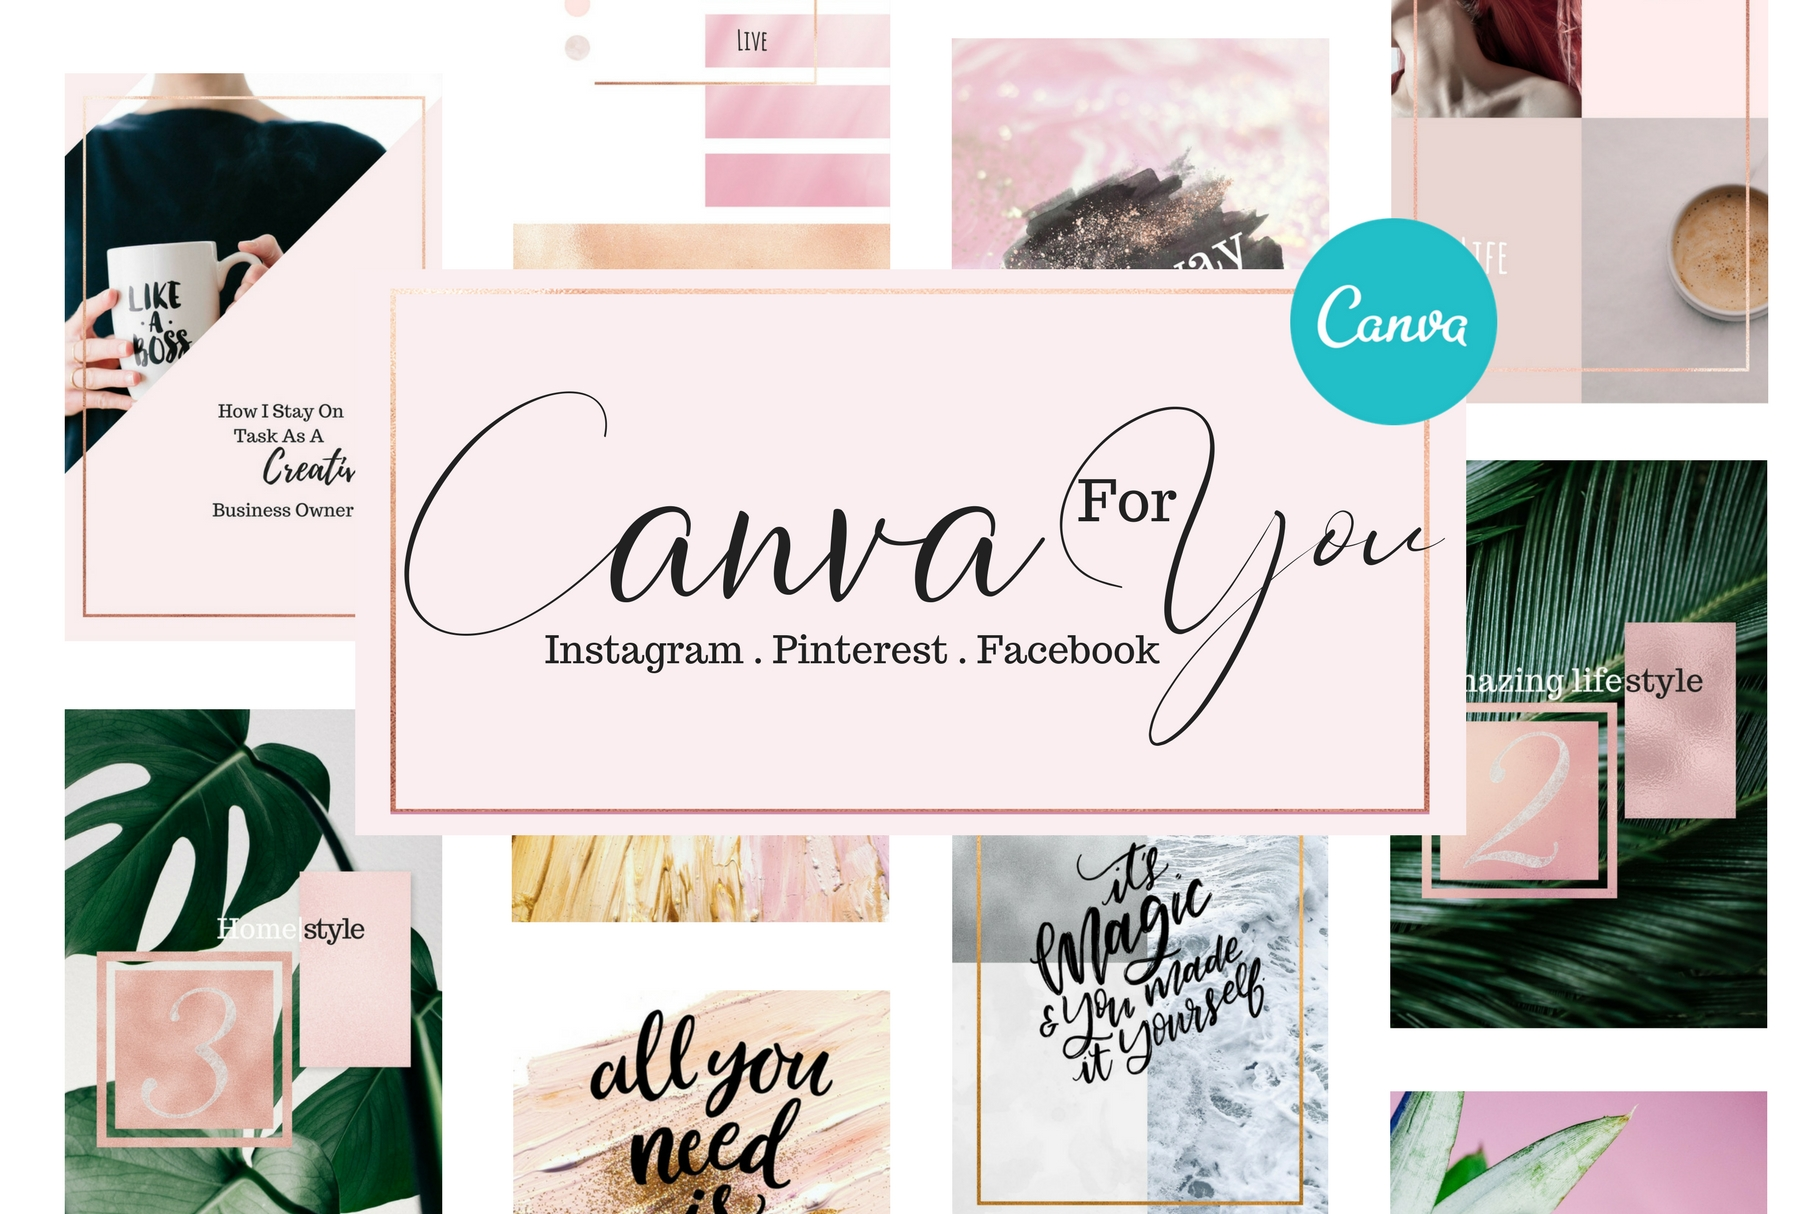 Canva for you - Social media example image 1